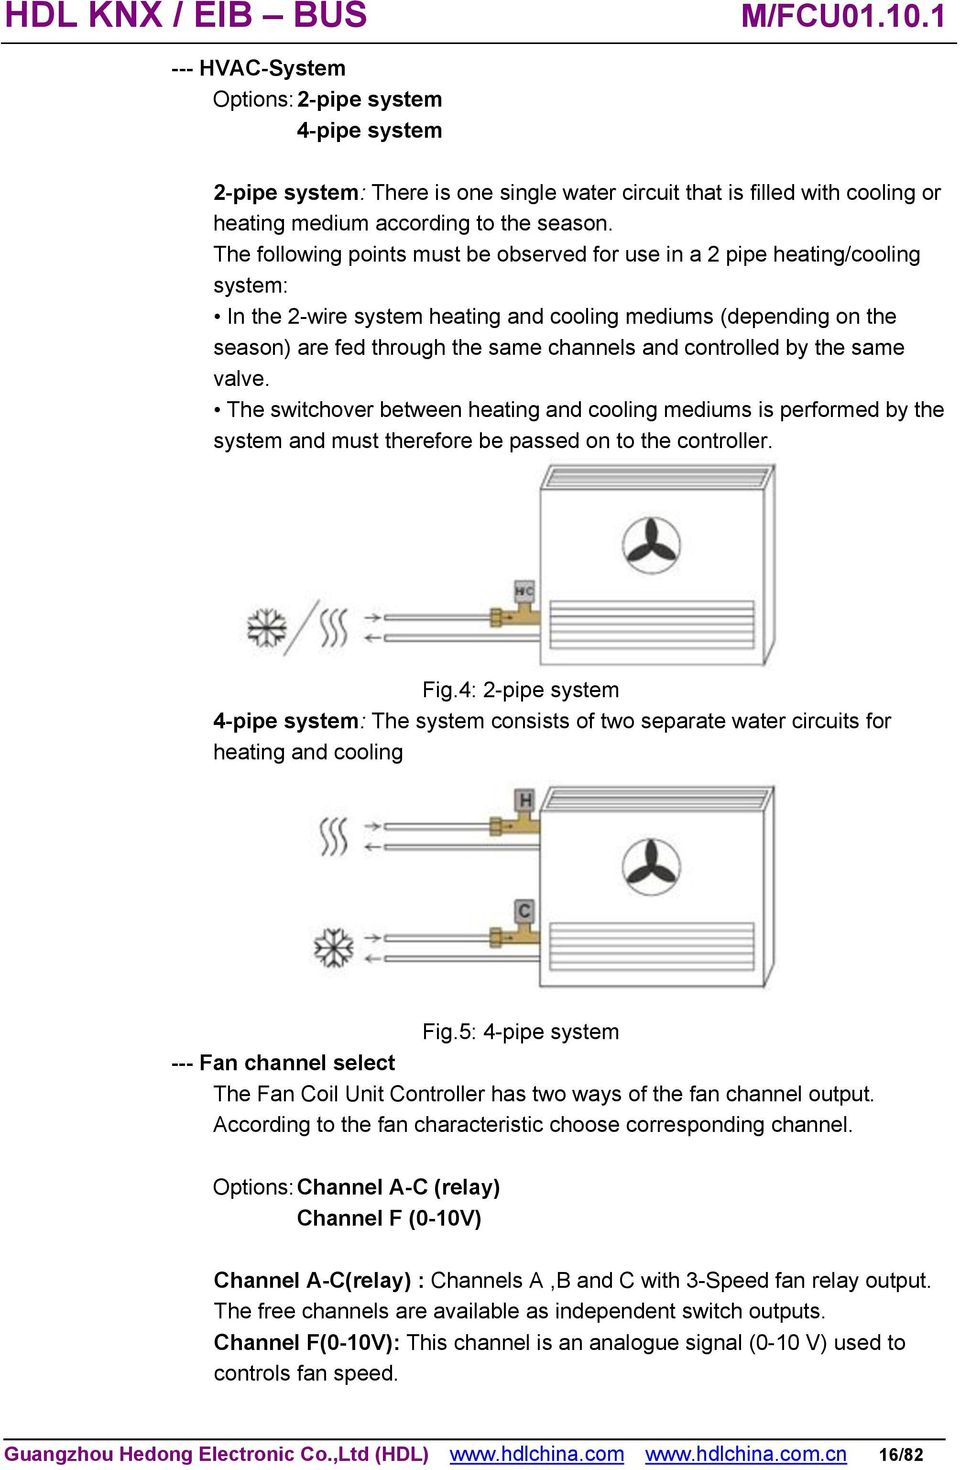 fcu thermostat wiring diagram honeywell au falcon alternator two pipe fan coil system - best imageforms.co